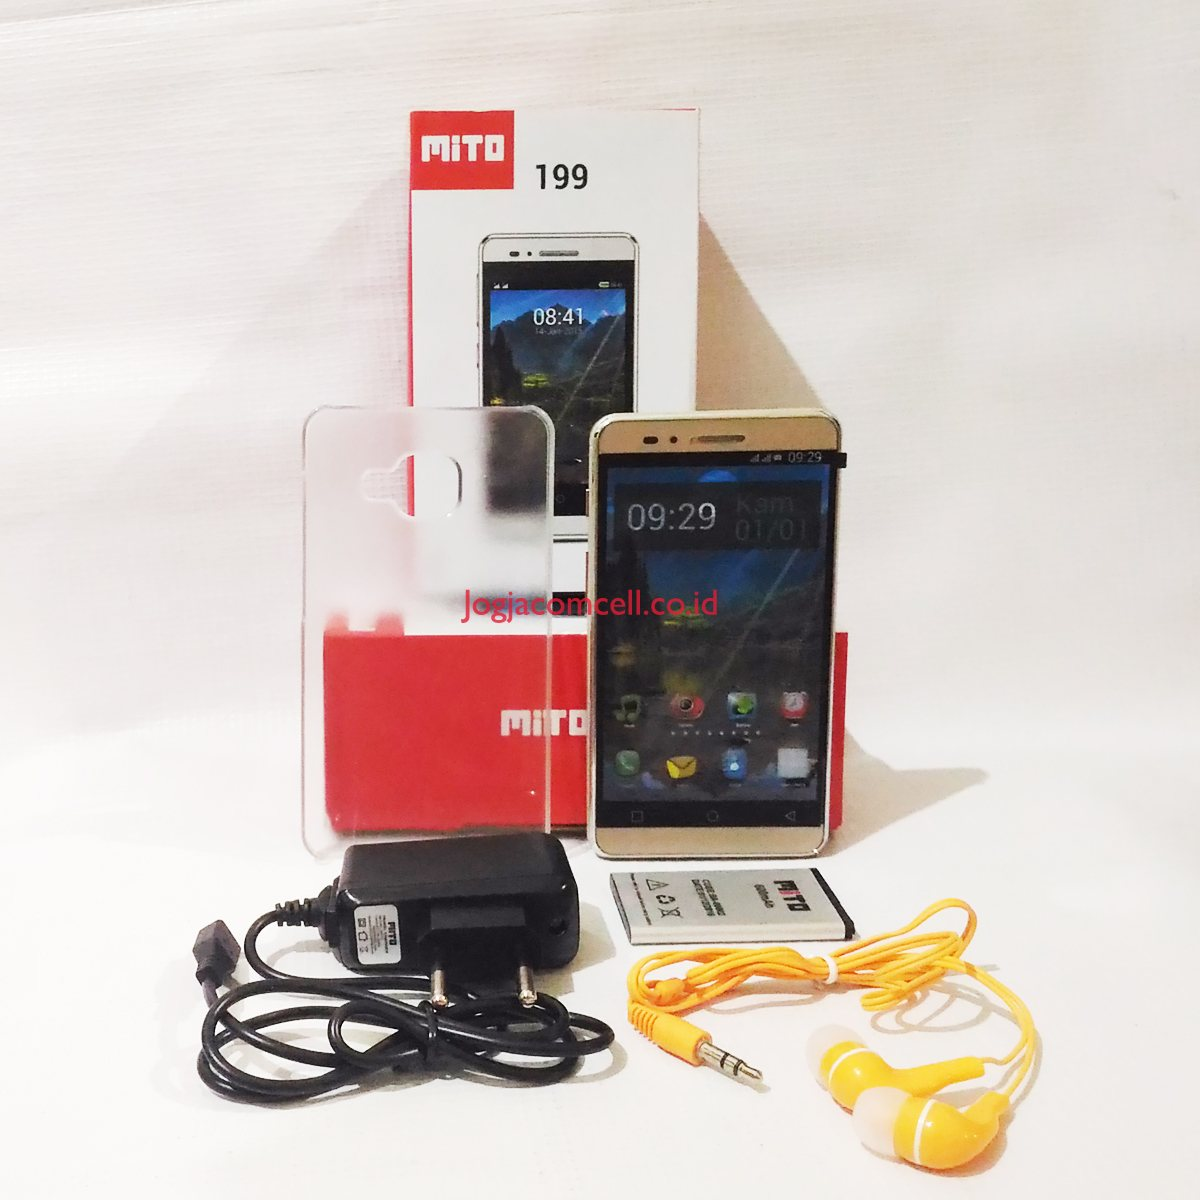 Mito 199 Touchscreen Ponsel Dual Sim Card Gsm Kabel Data Smartphone